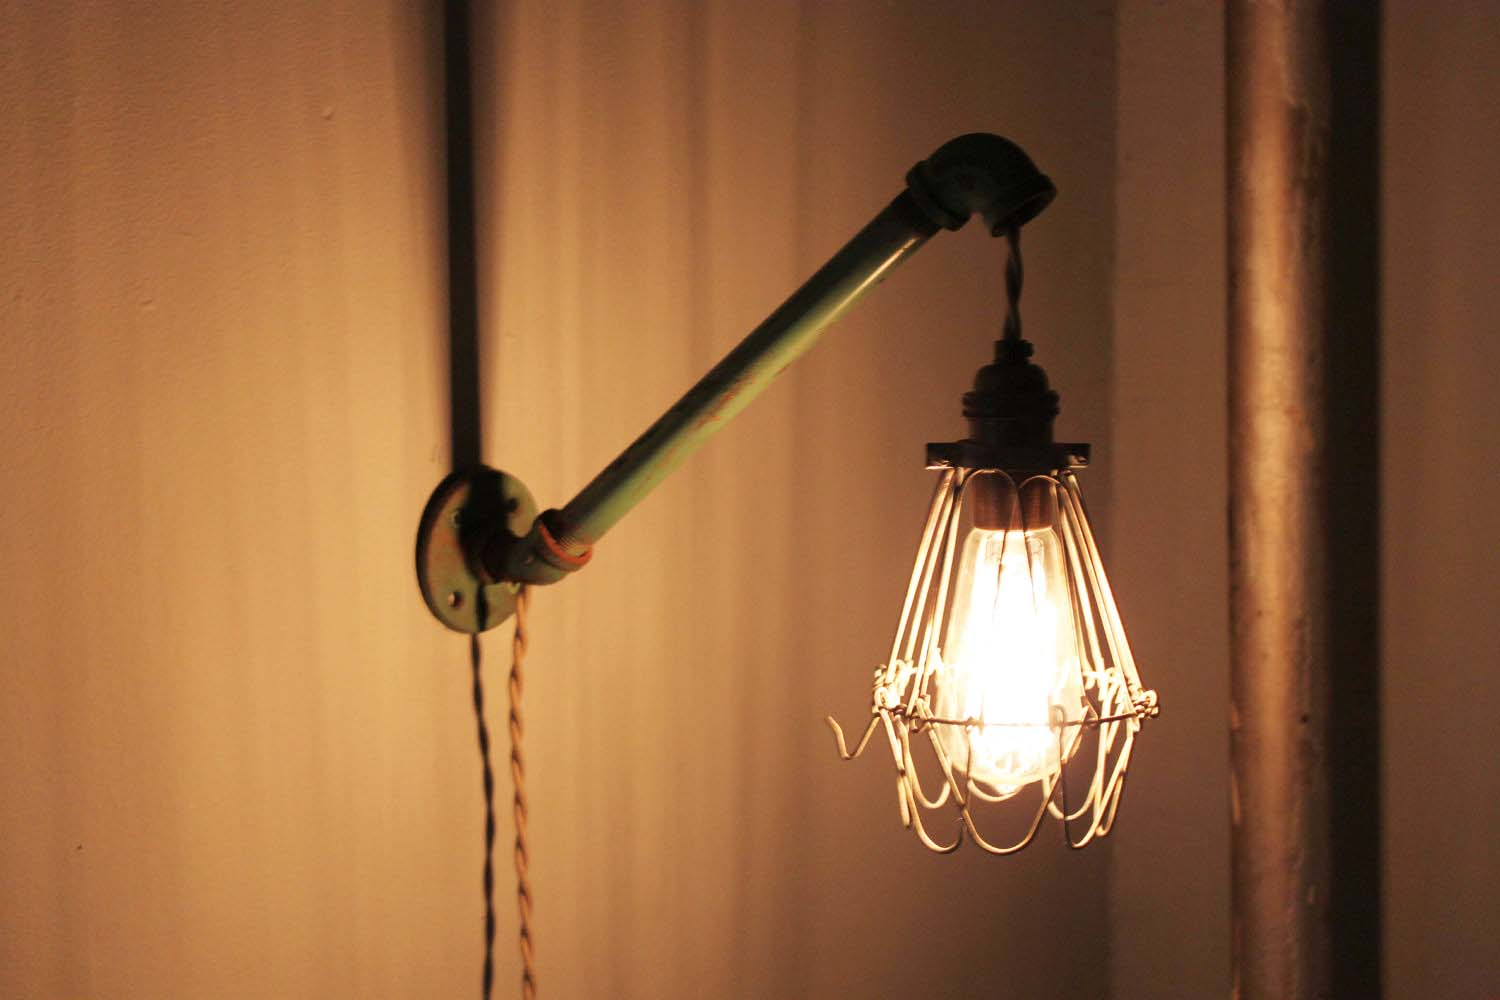 Top 10 beautiful wall lights 2018 warisan lighting getting the right color and design getting the right beautiful wall lights aloadofball Image collections